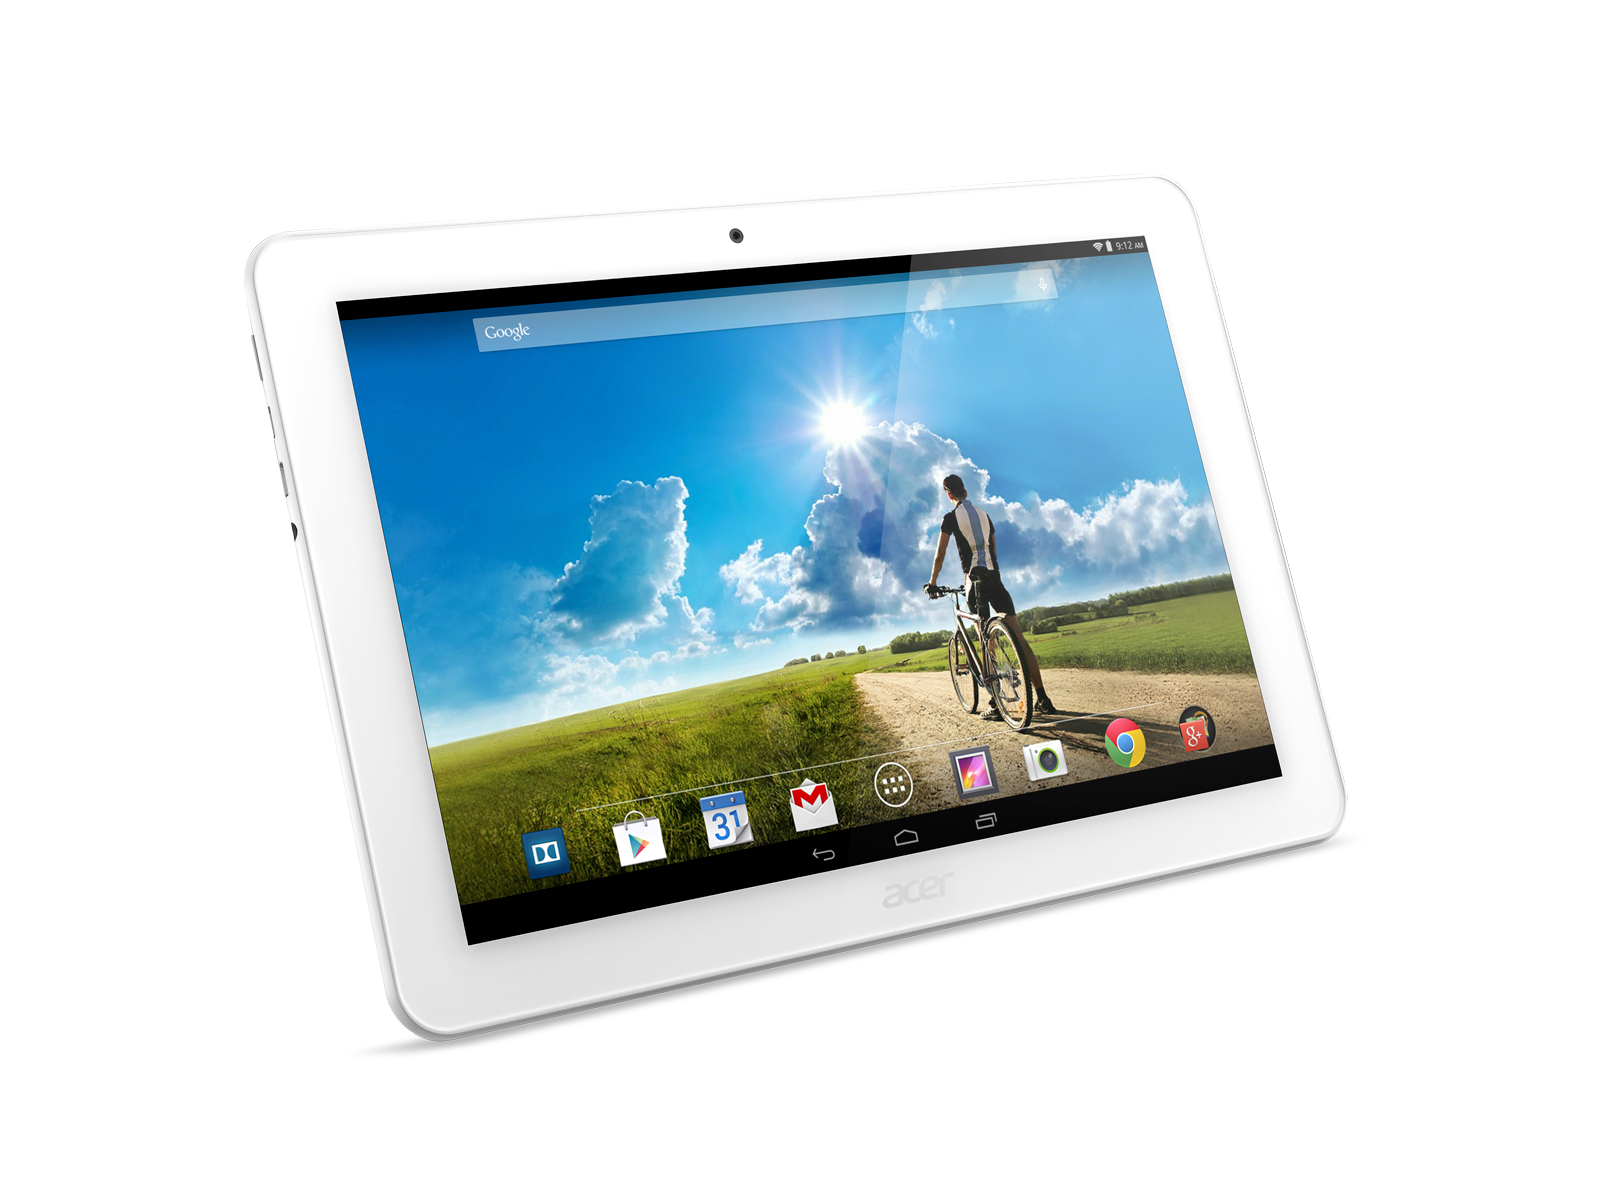 acer 10 inch quad core tablet review